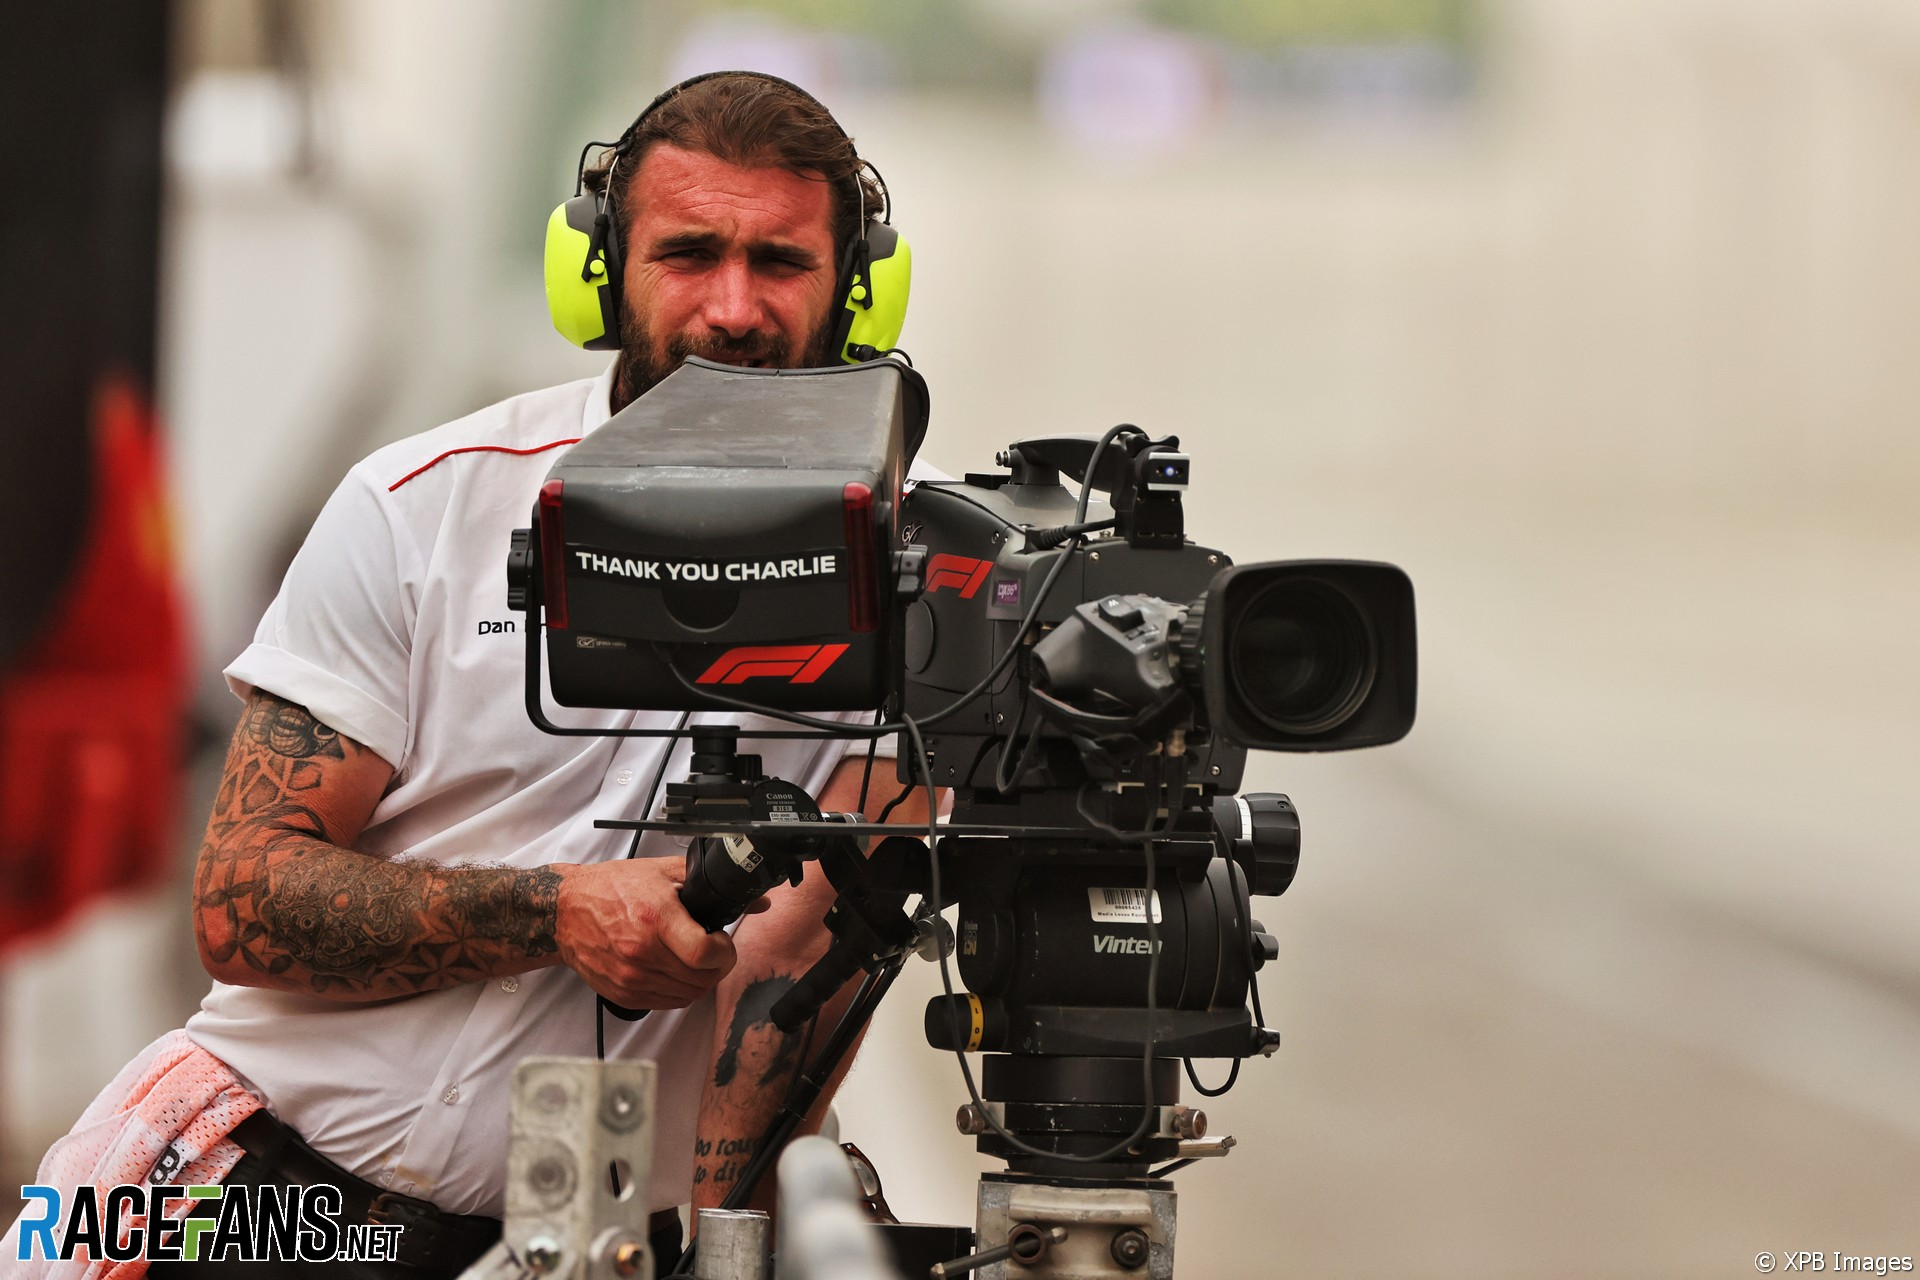 Cameraman, Bahrain International Circuit, 2021